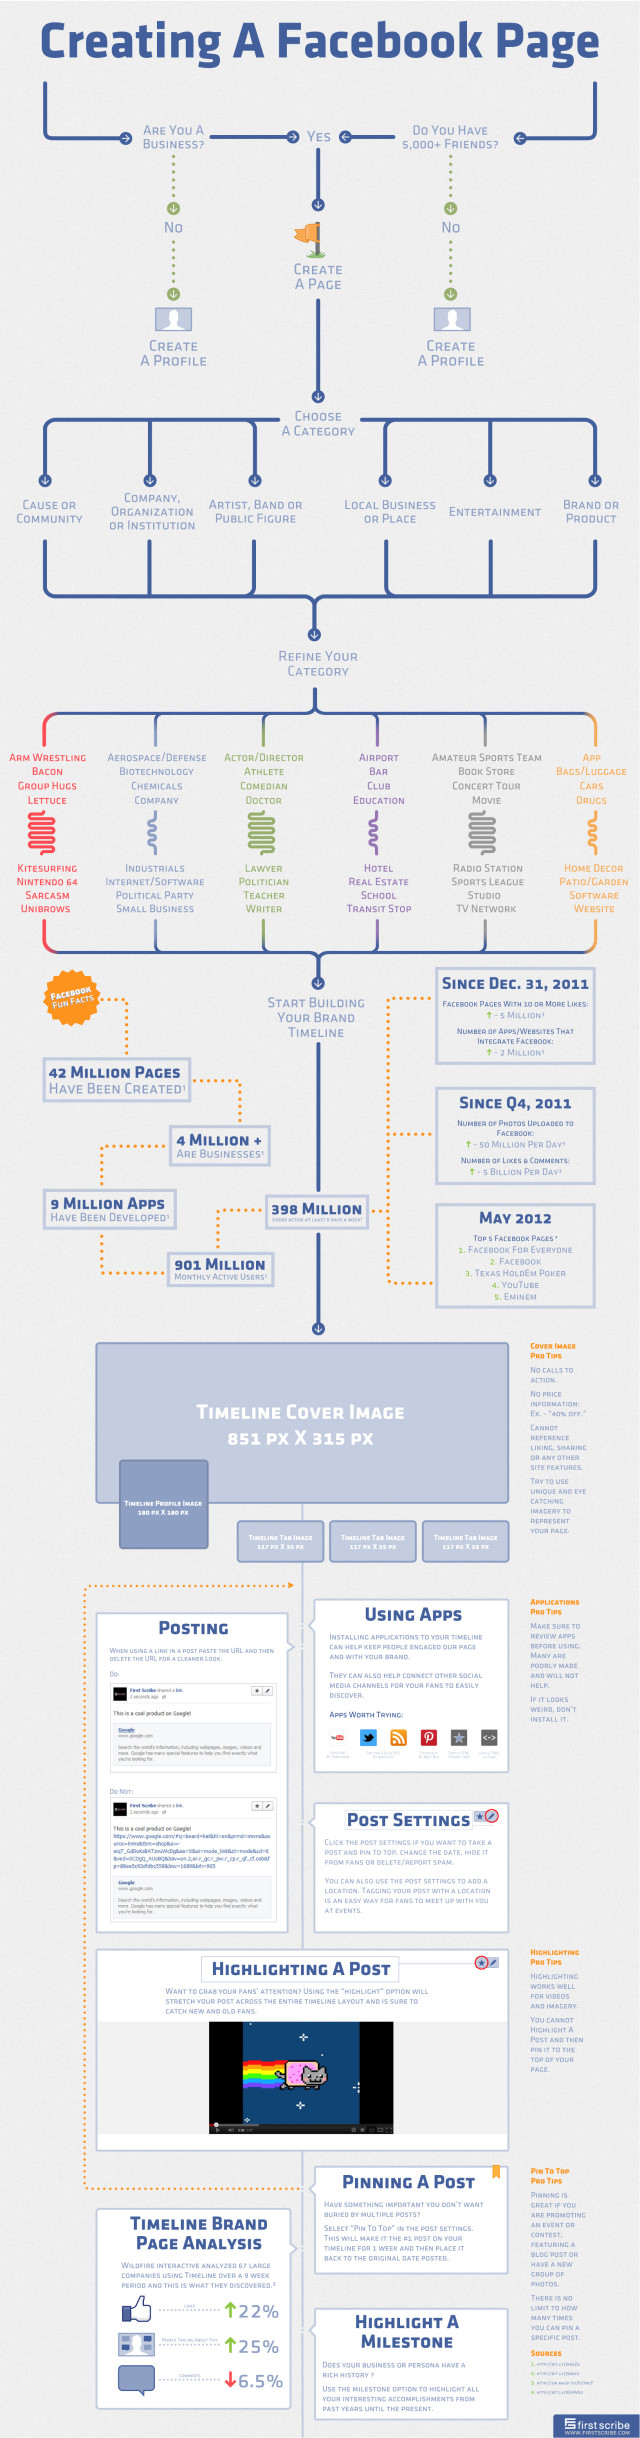 Facebook Page Infographic final